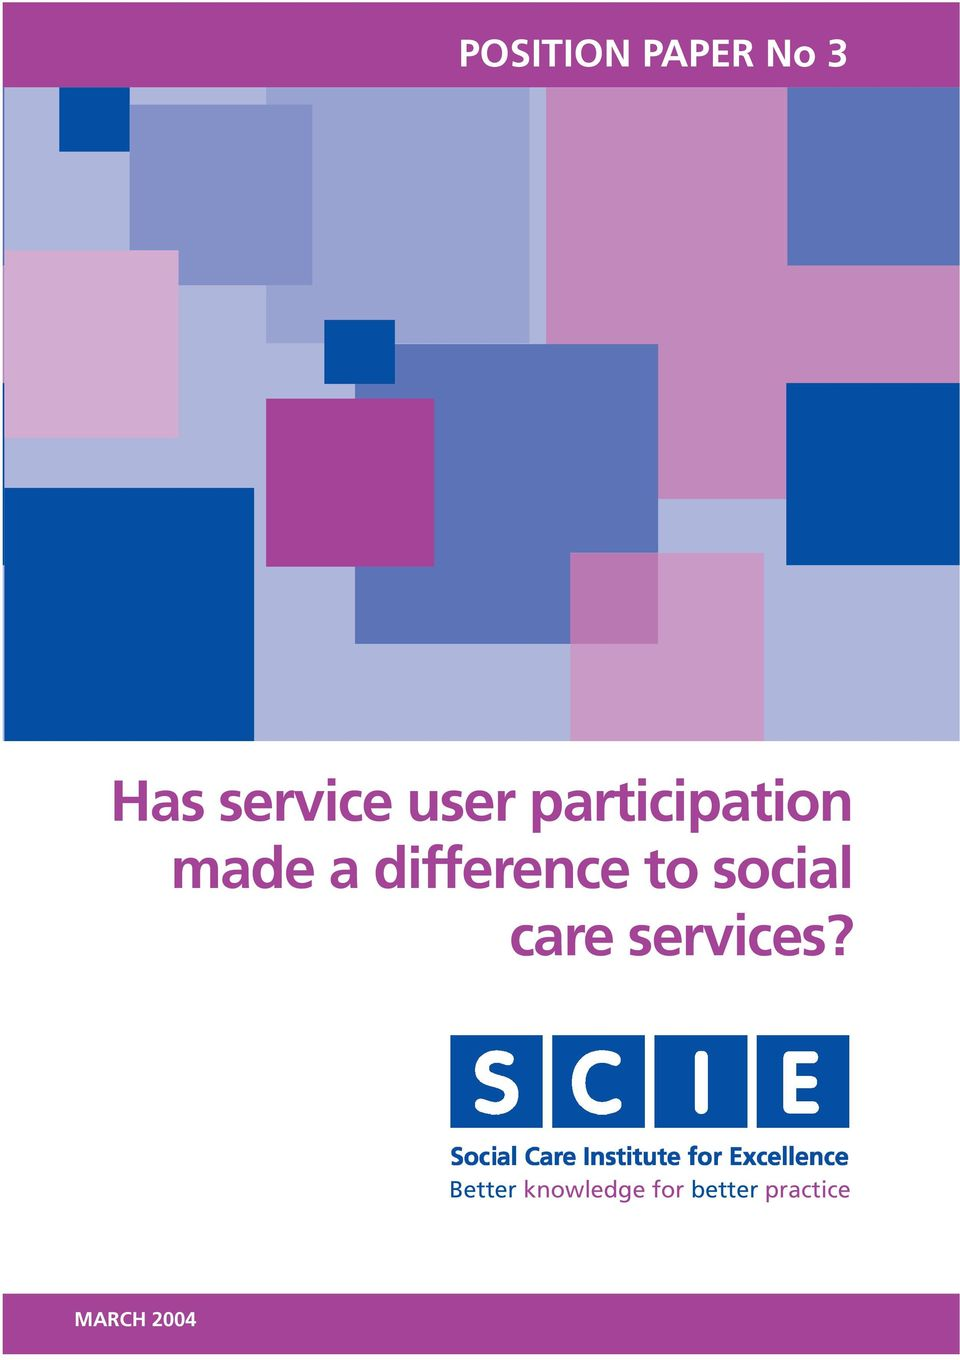 difference to social care services?